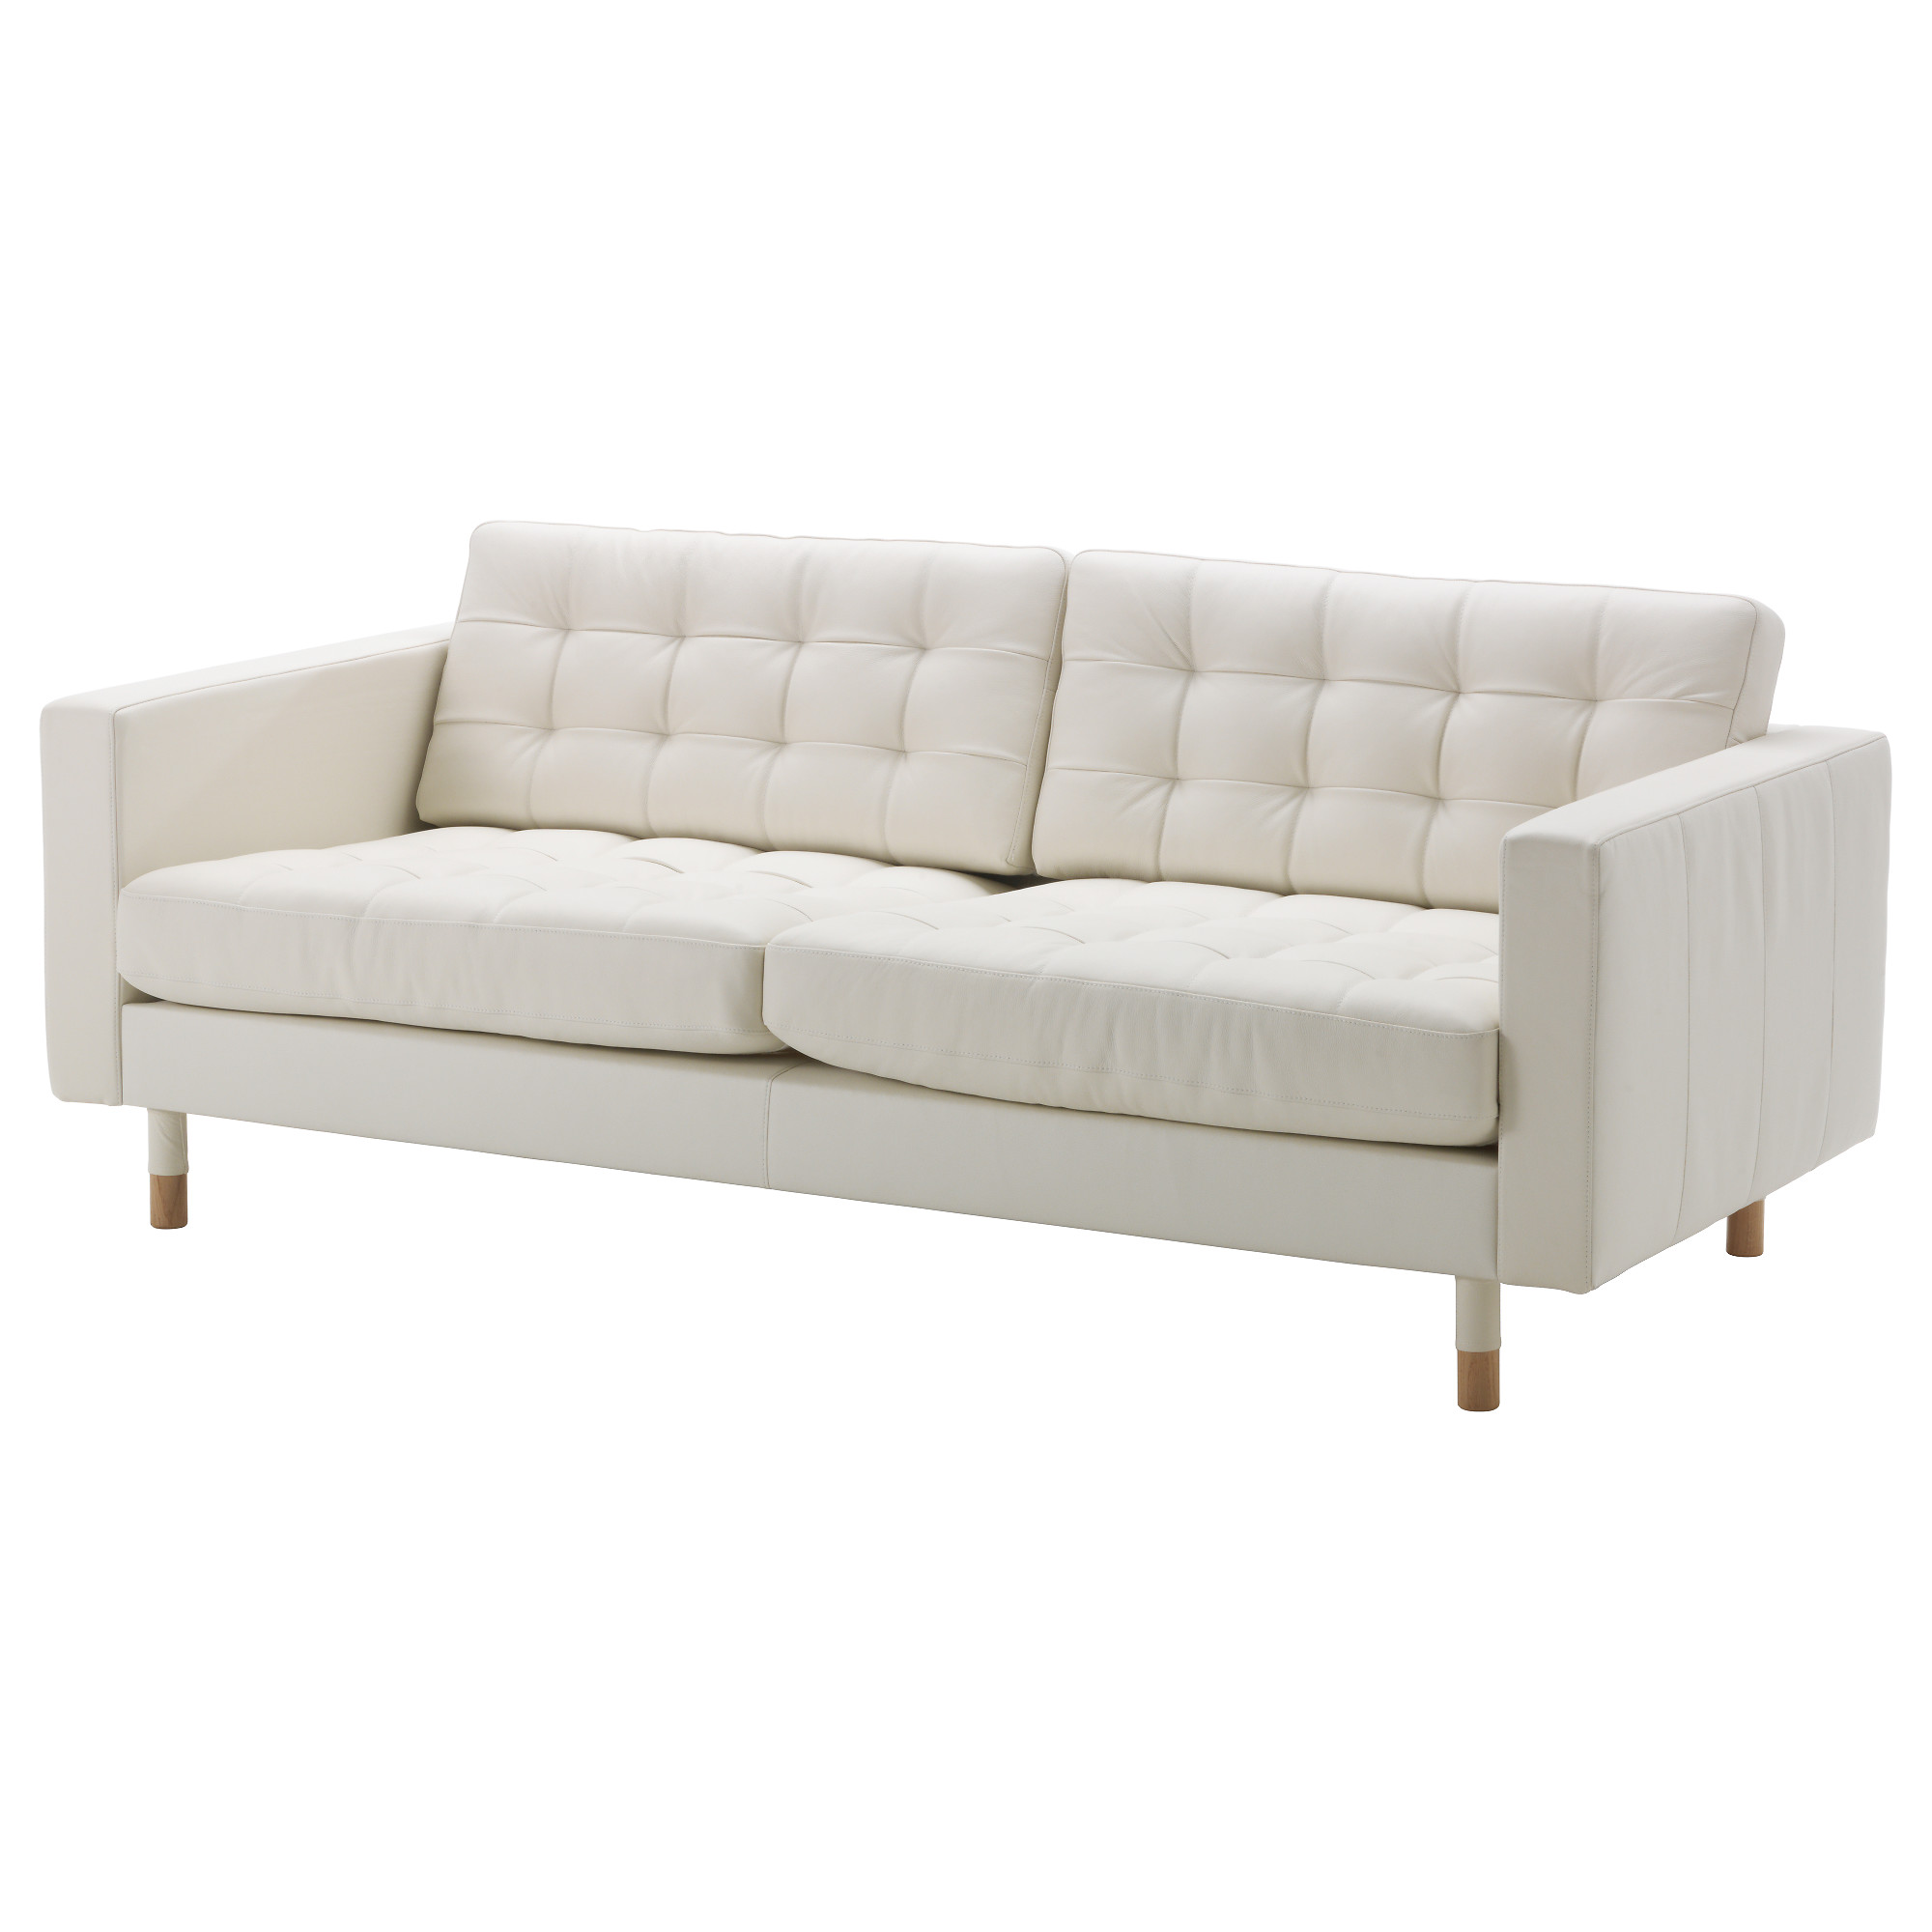 white leather sofa landskrona sofa, grann, bomstad white/wood width: 80 3/8  GDKYWIS